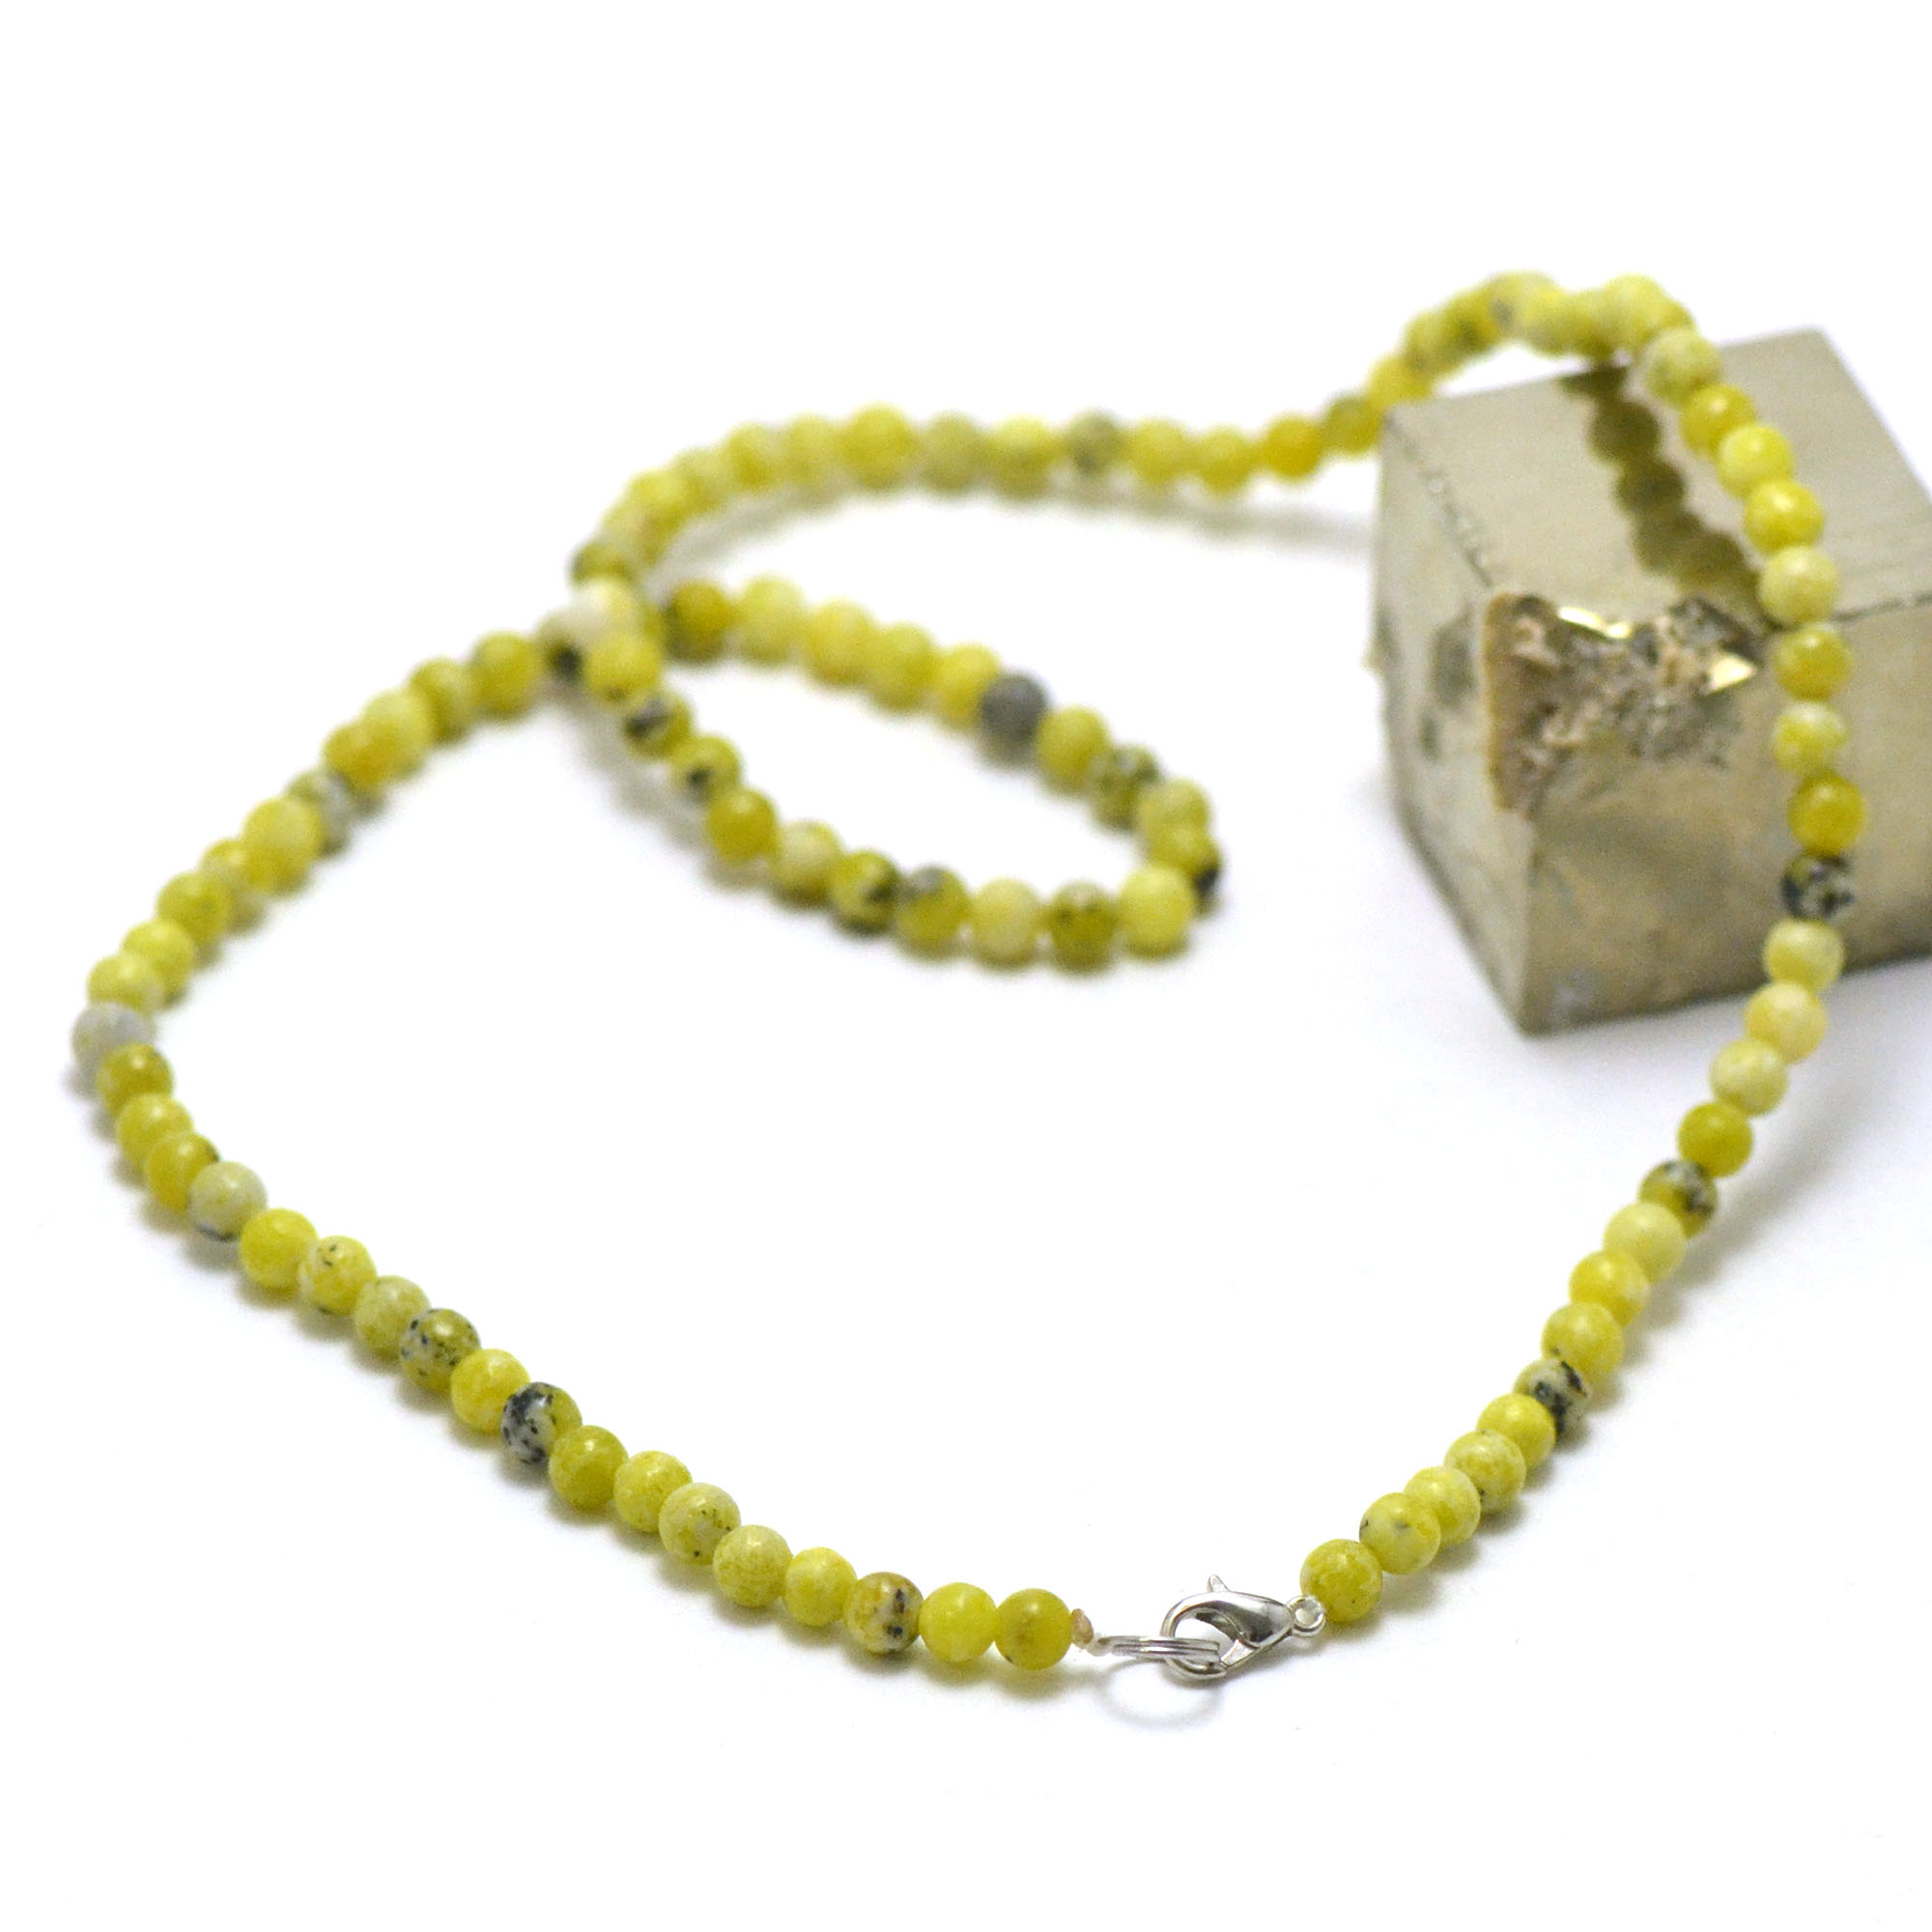 collier chrysoprase citron ronde 4 mm , pierre naturelle